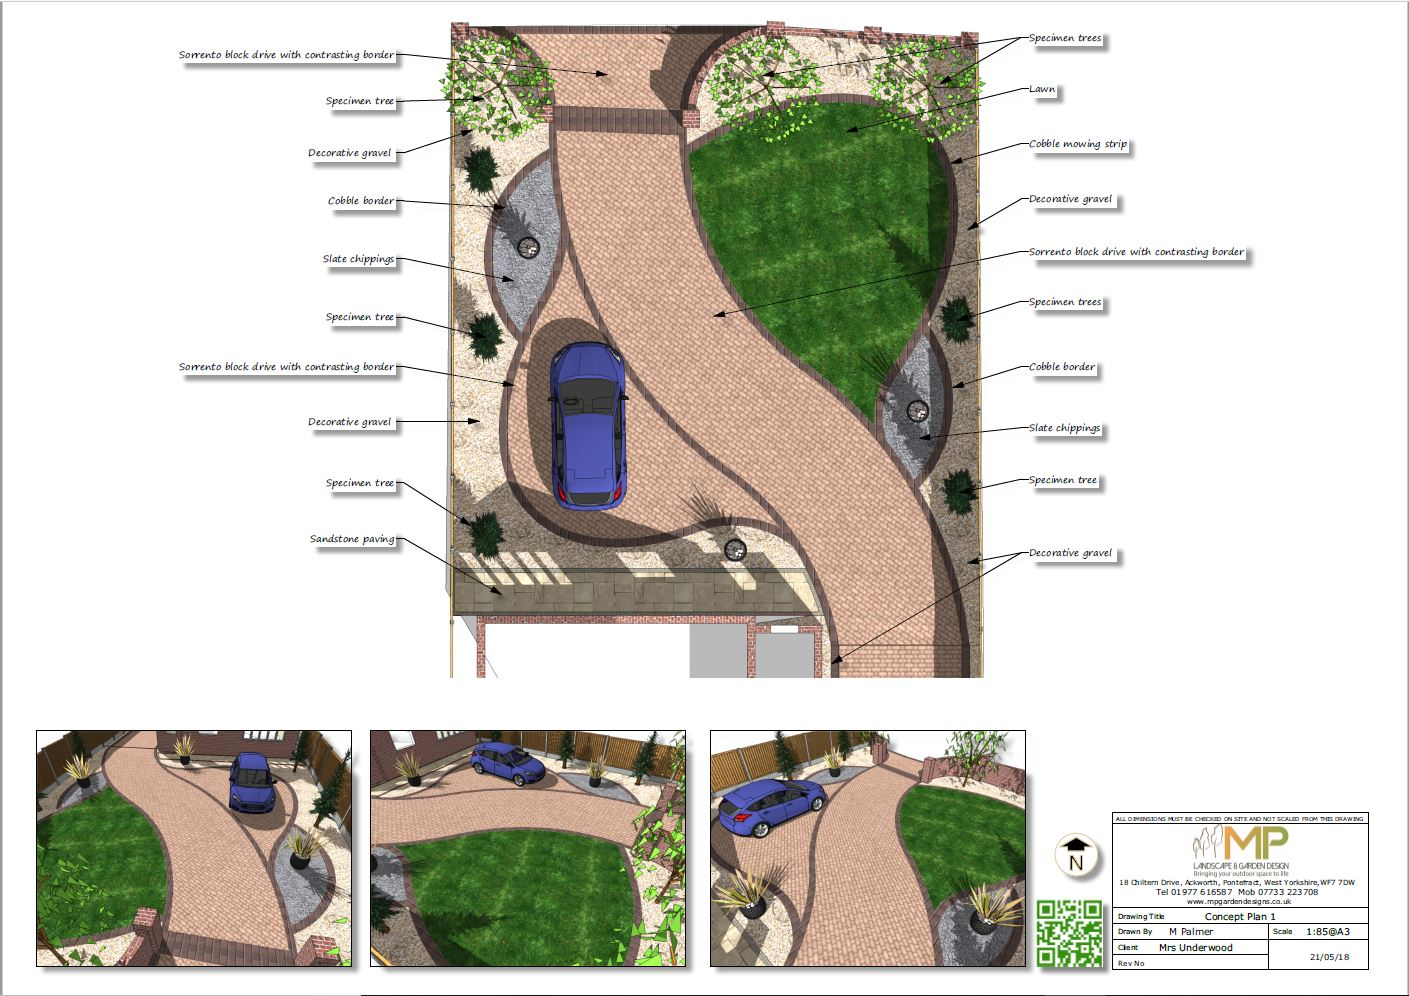 Concept plan-1 for a front garden and drive in Castleford